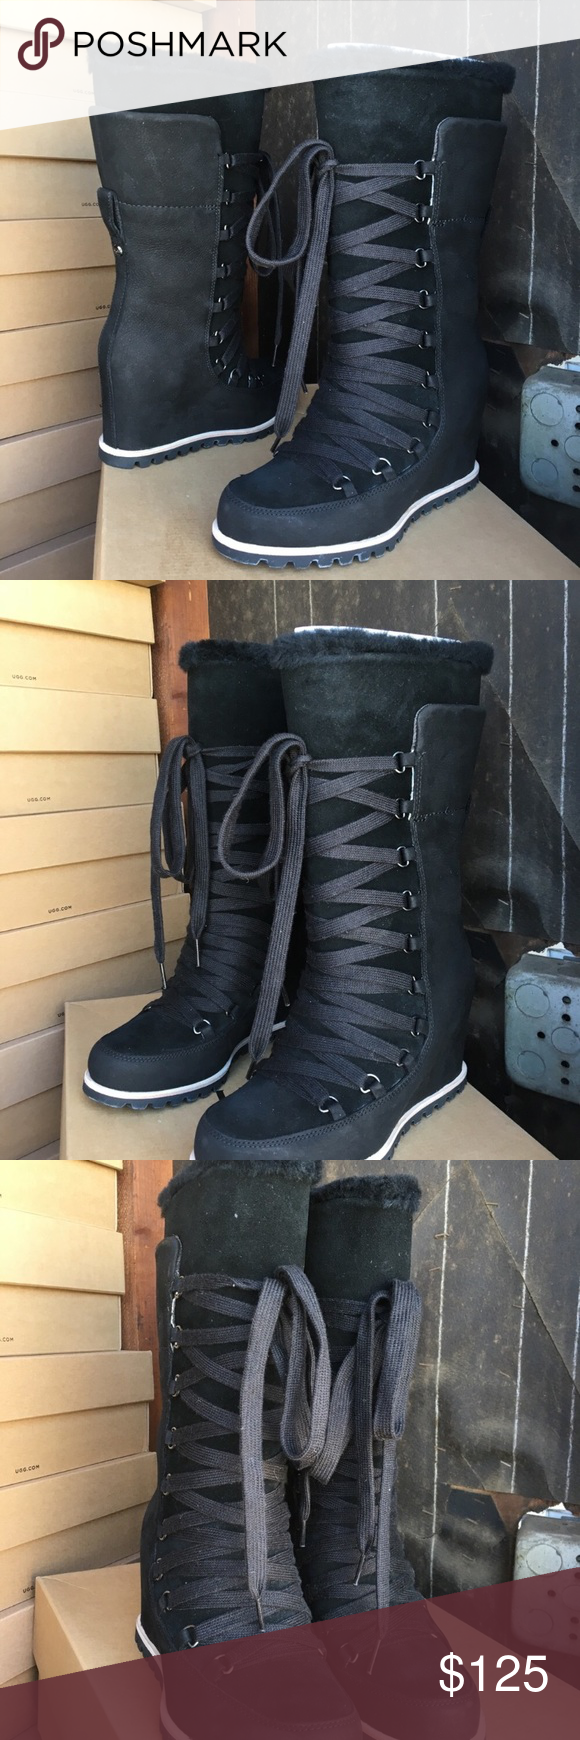 a0682c3ee0eb ❤️New Ugg Black Mason Tall wedge Laced Boots Sz 10 New Ugg Black Mason Tall  wedge Laced Boots ❤ 💦 A must have ! By now and save 💰💰 size 10 Come out  ...